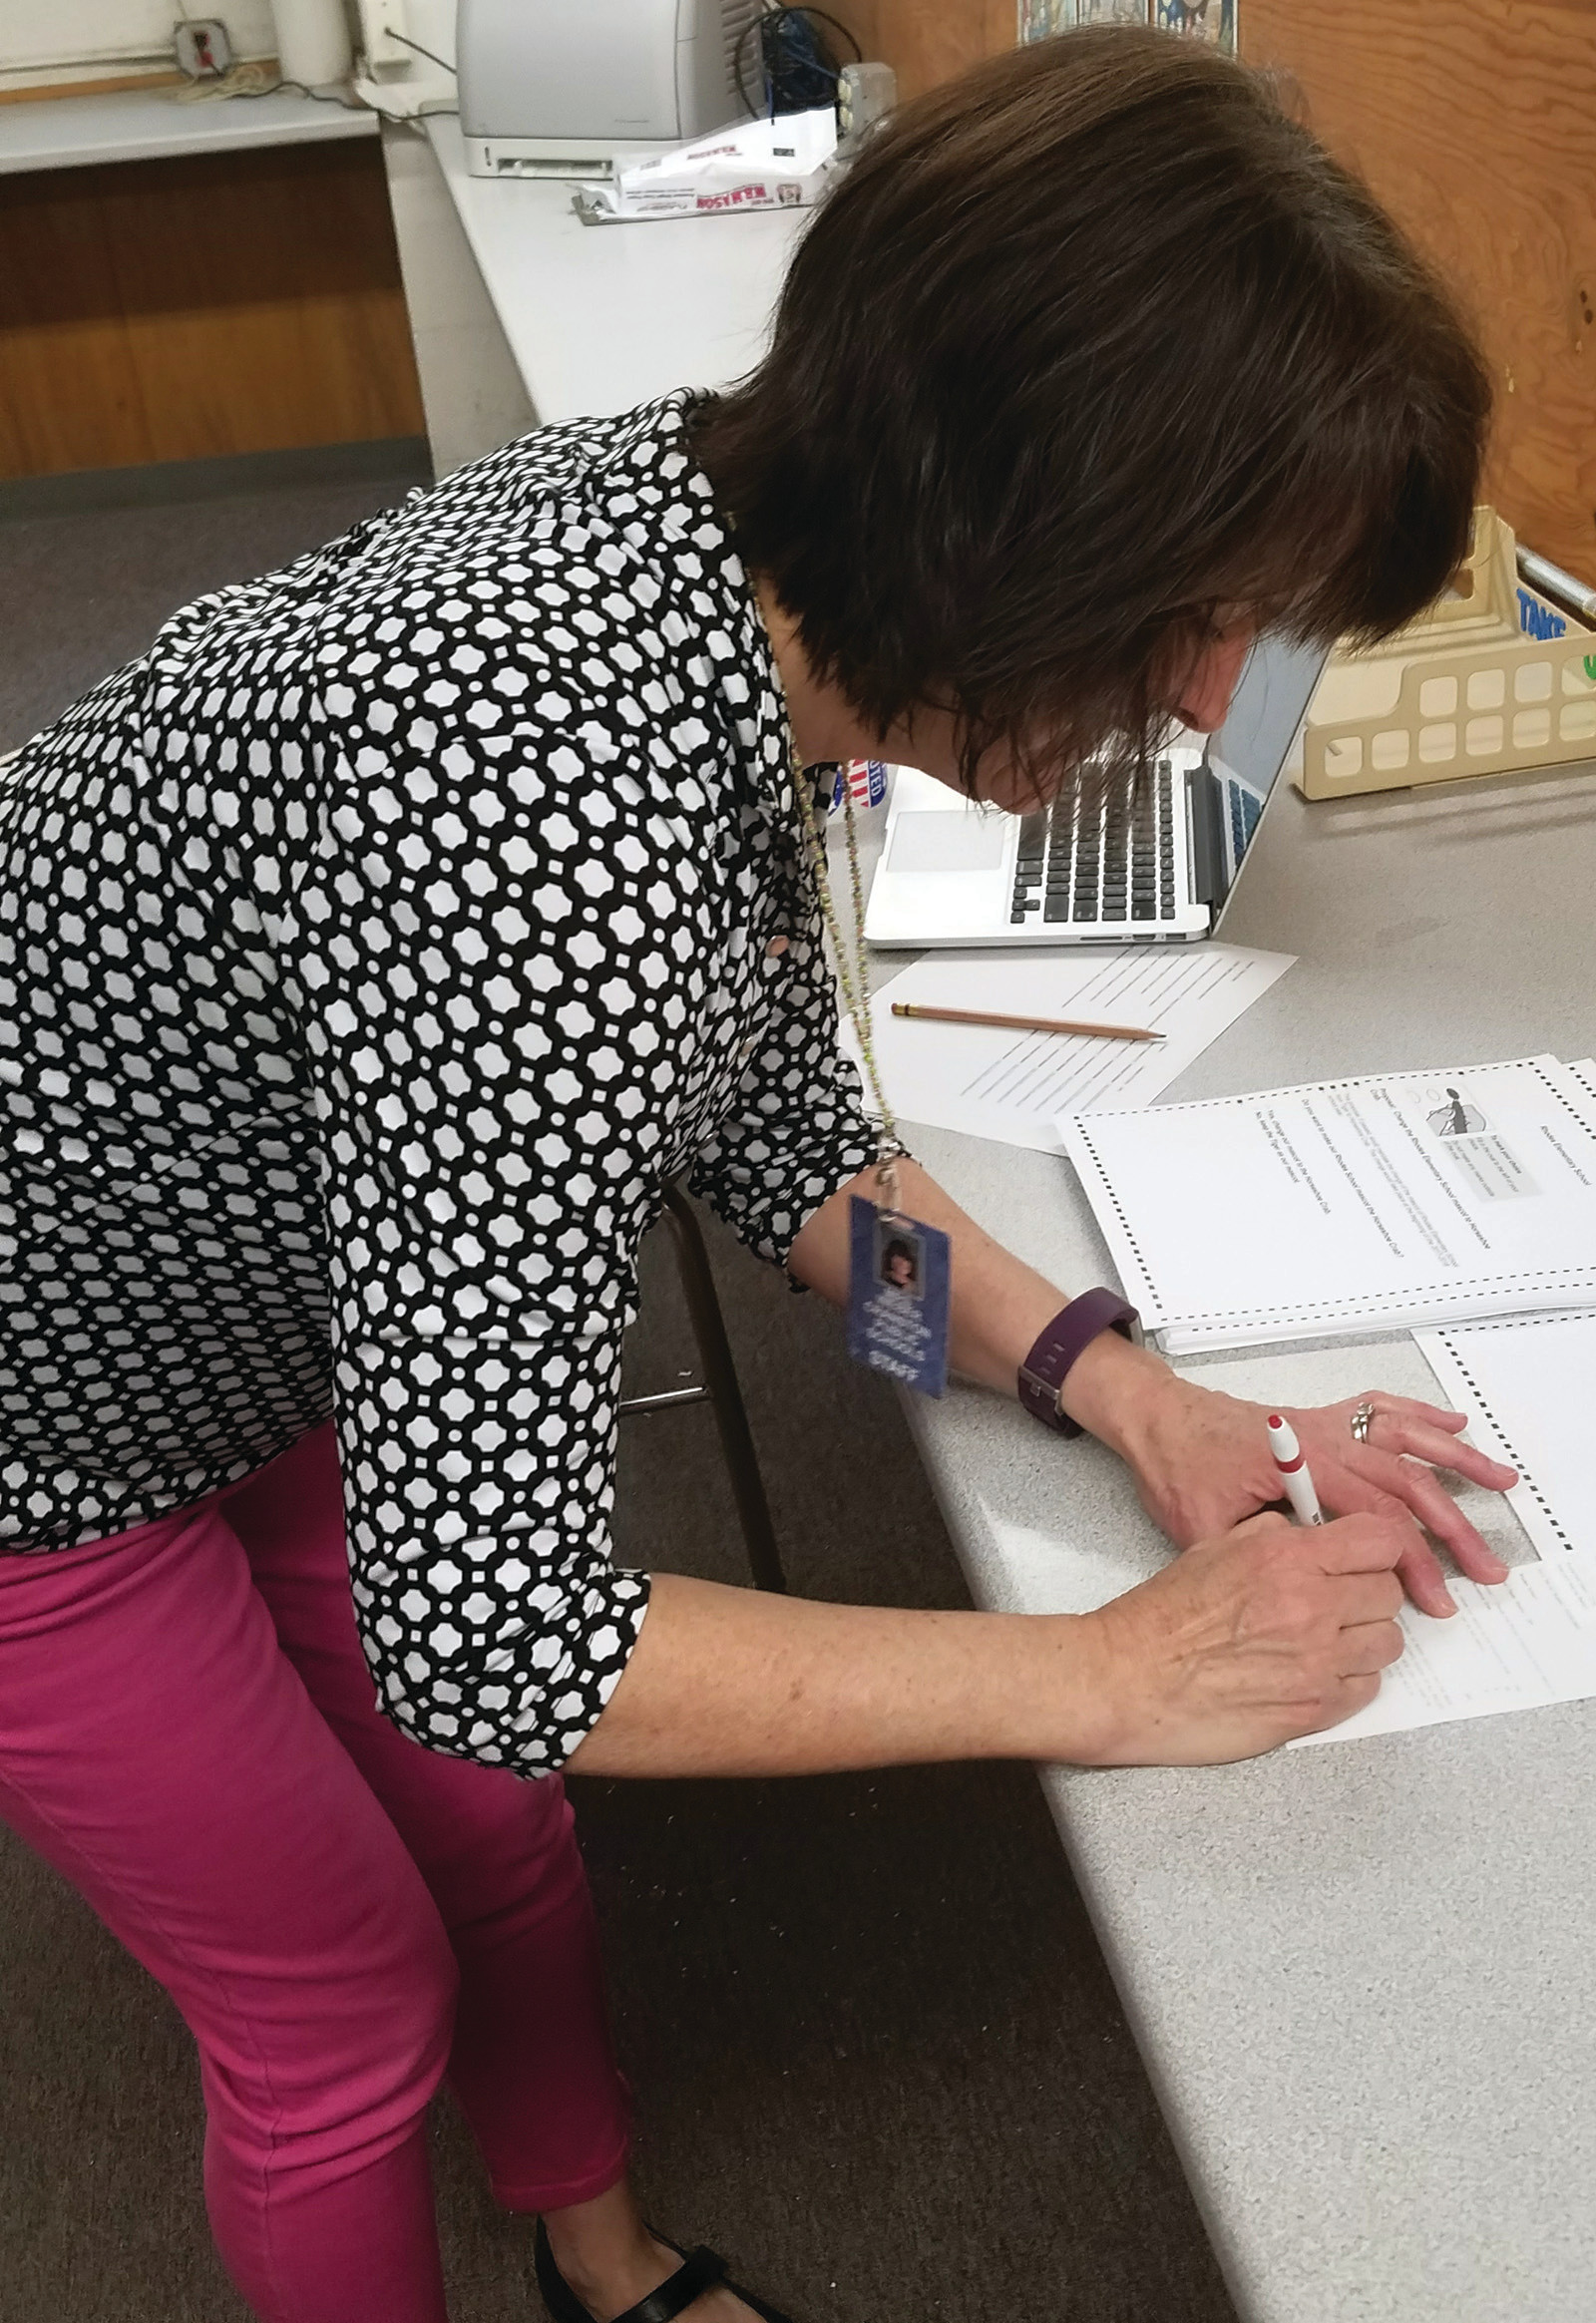 SIGNING OFF: Sue Weber signs off on the final results, just as in a real election.